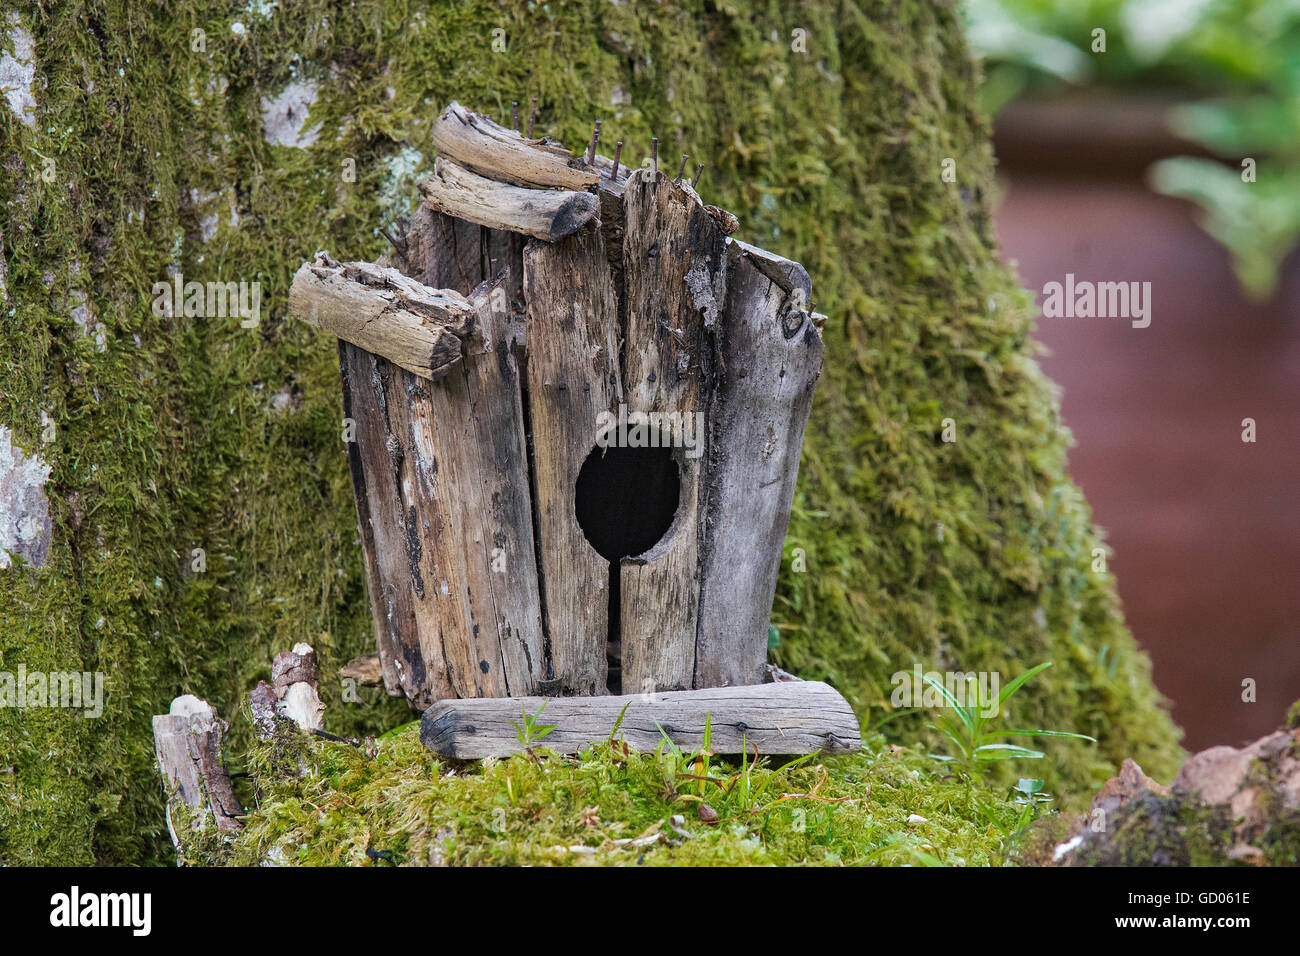 Old bird house, in moss covered tree, Loch Lomond, Scotland - Stock Image